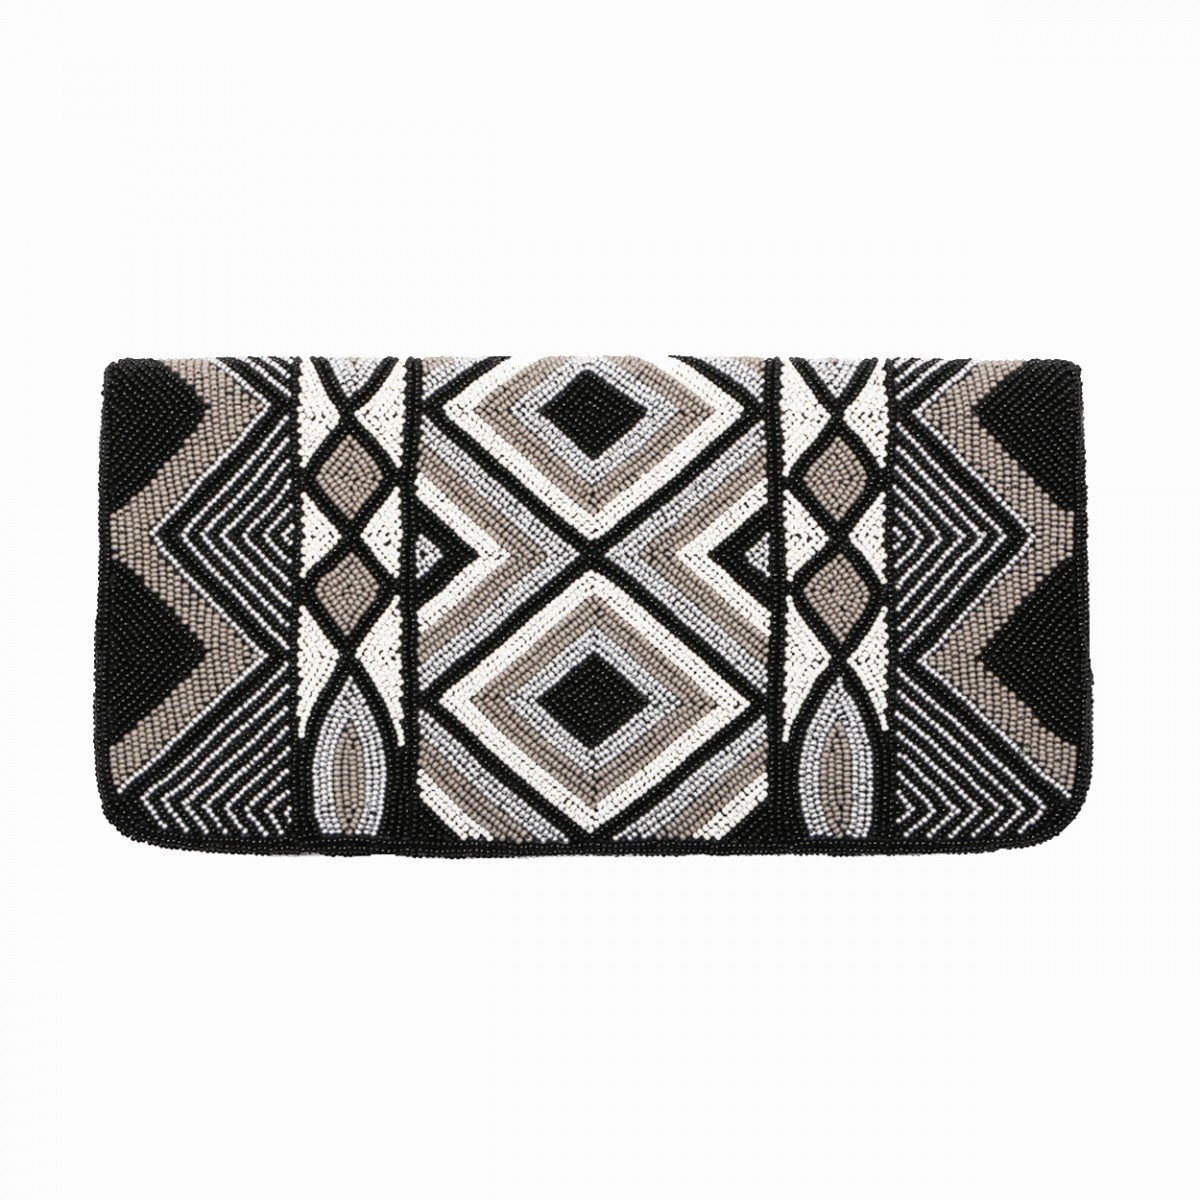 Black and white beaded evening clutch bag